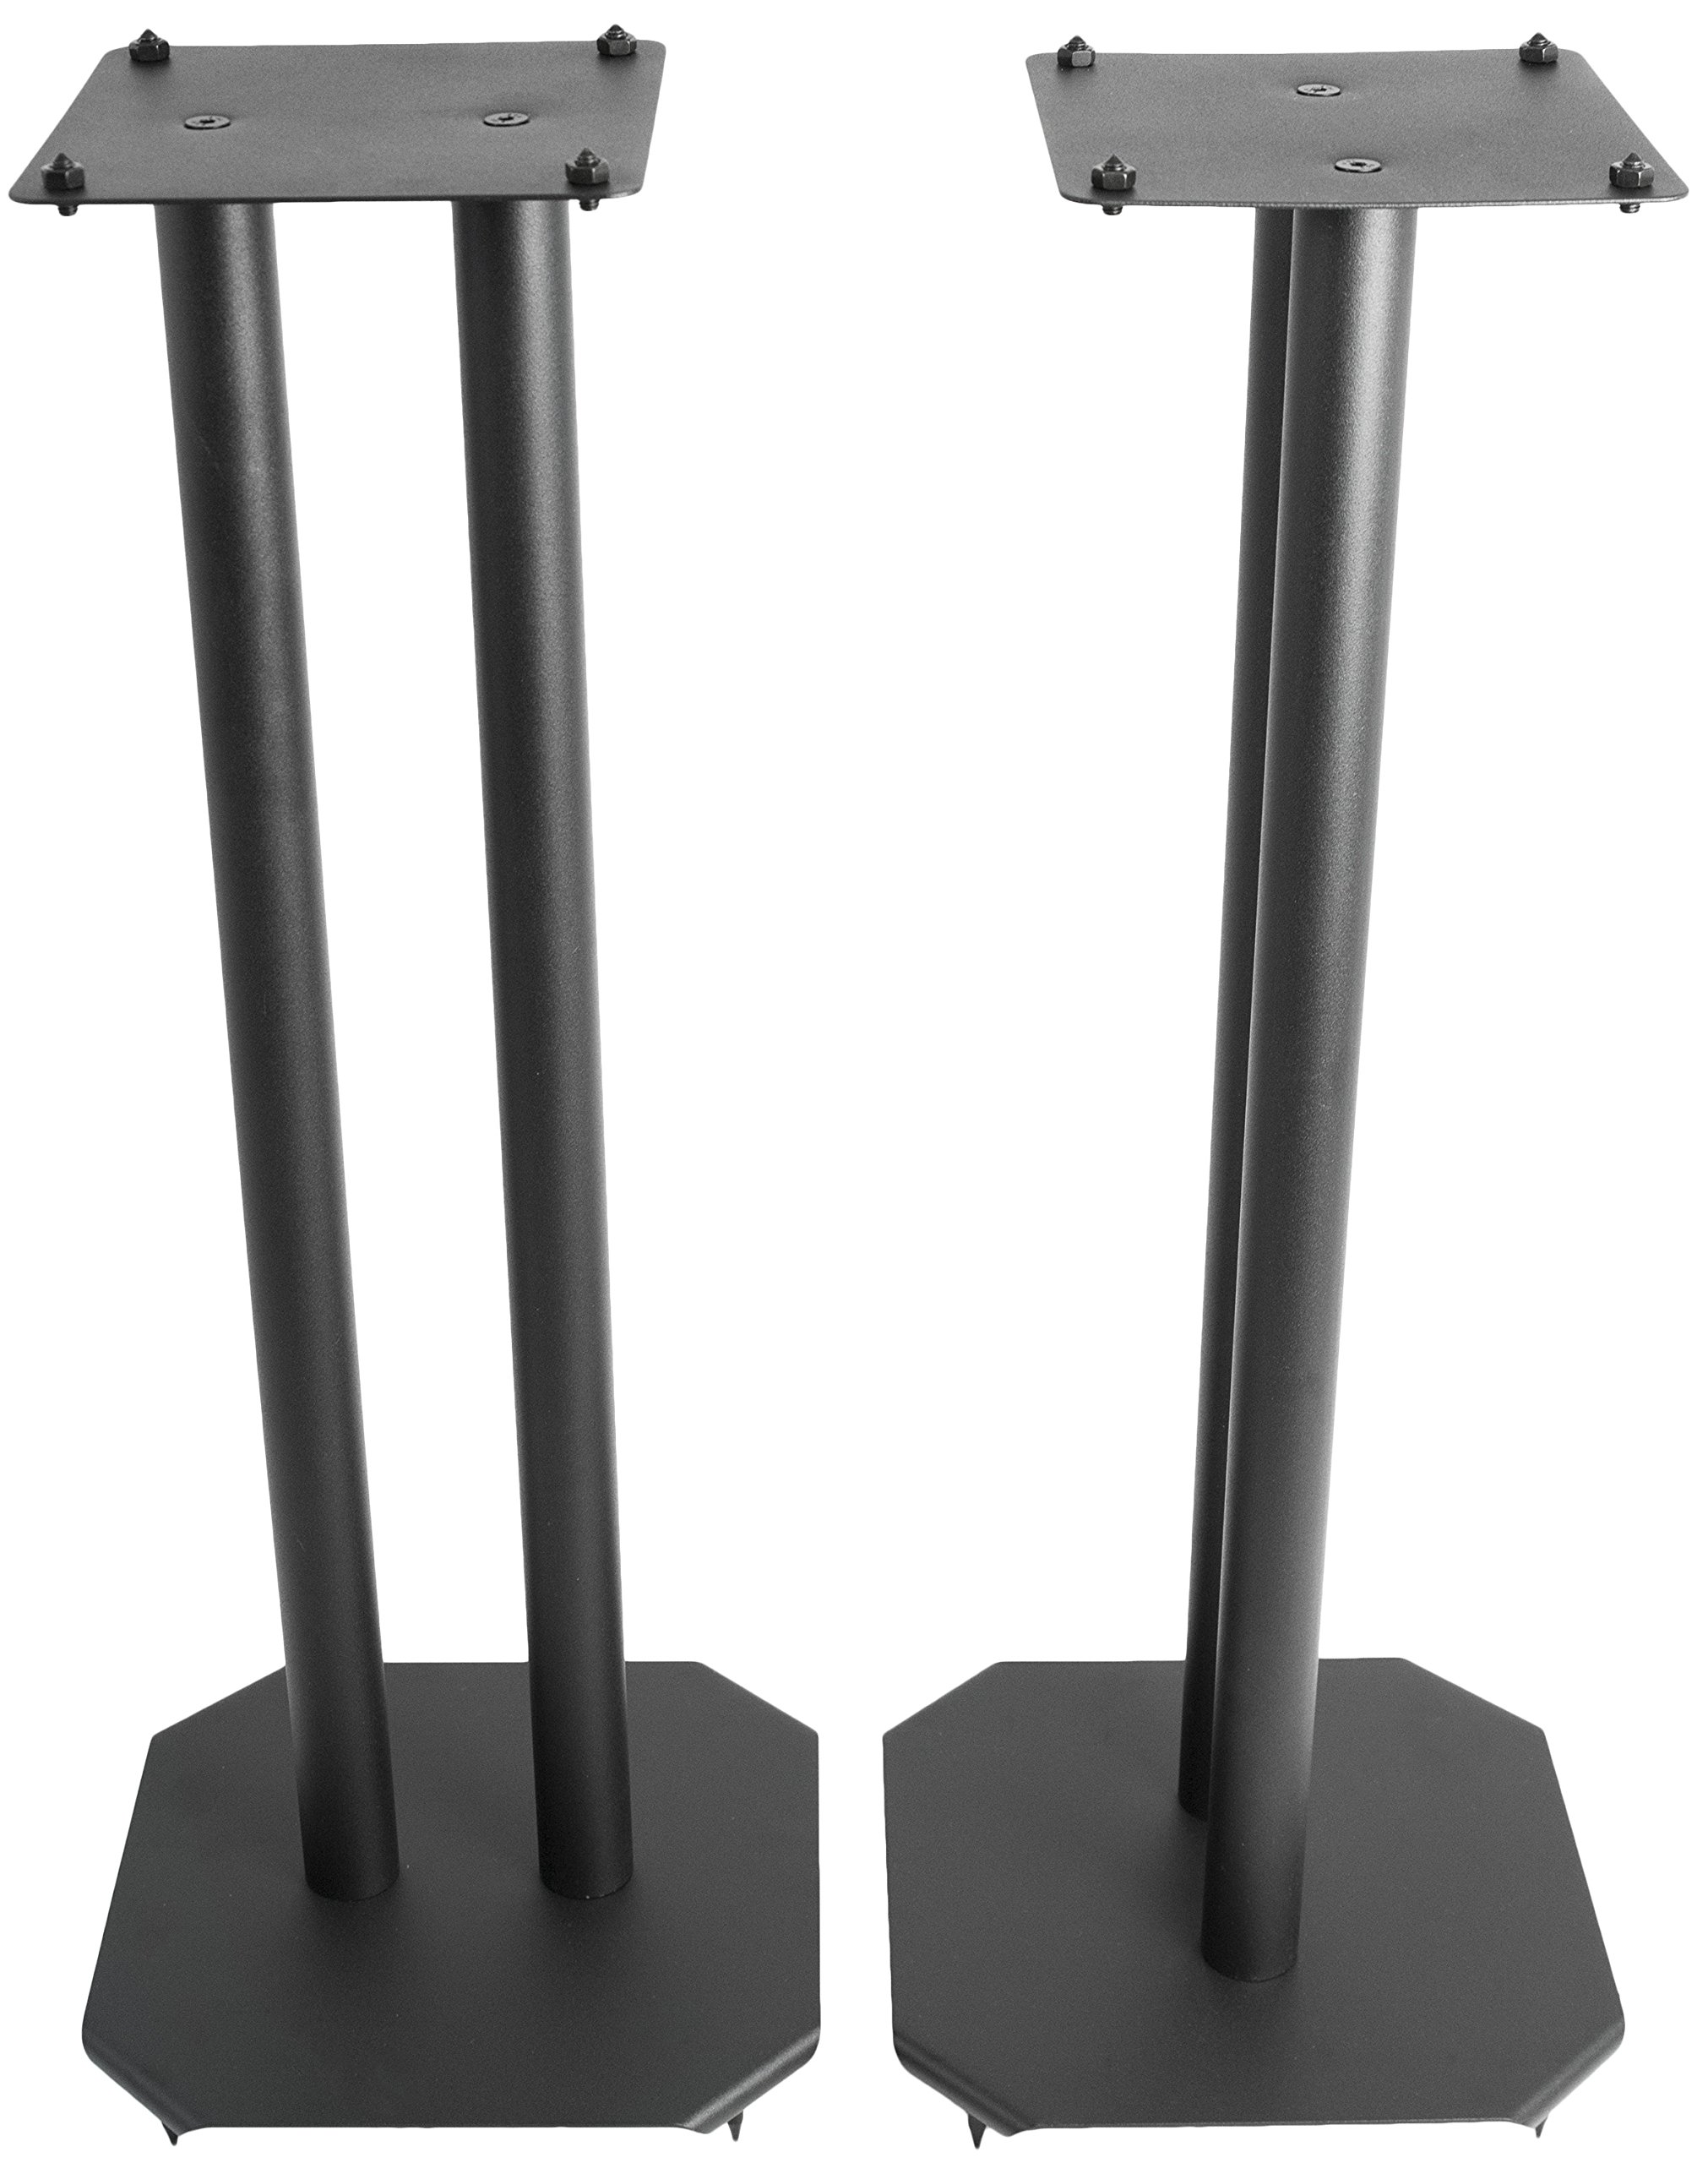 Cheap VIVO Premium Universal 25 inch Floor Speaker Stands for Surround Sound and Book Shelf Speakers (STAND-SP03B) Black Friday & Cyber Monday 2019